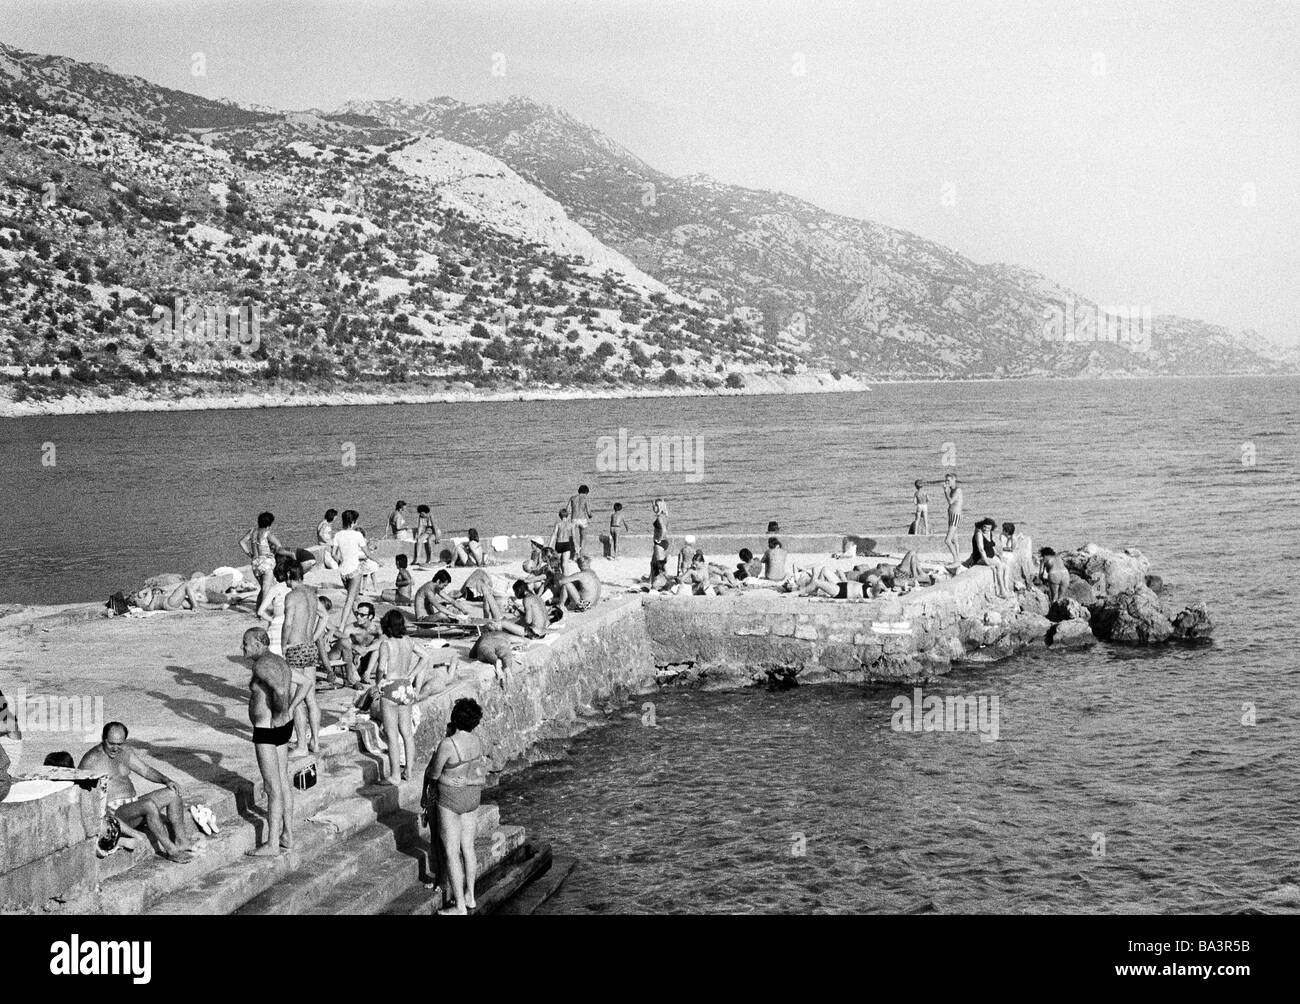 Seventies, black and white photo, holidays, tourism, bathing tourists, people take a sunbath, Croatia, at that time - Stock Image